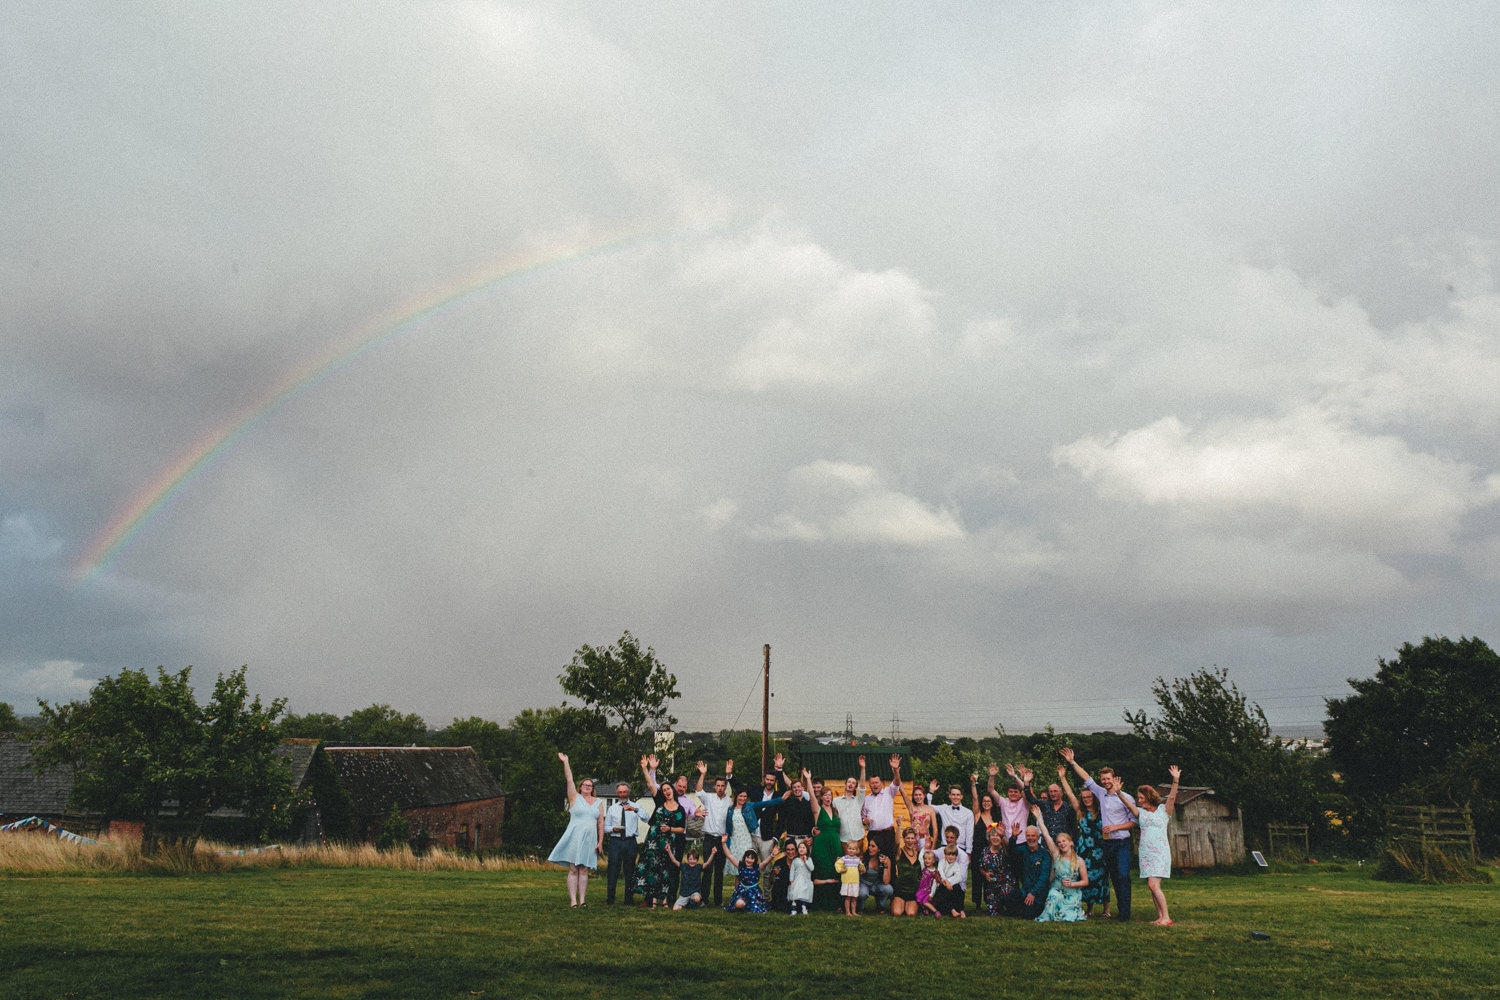 rainbow, wedding rainbow, august wedding, bride & groom, late summer wedding, outdoor wedding photography, farm wedding, devon wedding, devon wedding photographer, alternative wedding, eco friendly wedding, green wedding